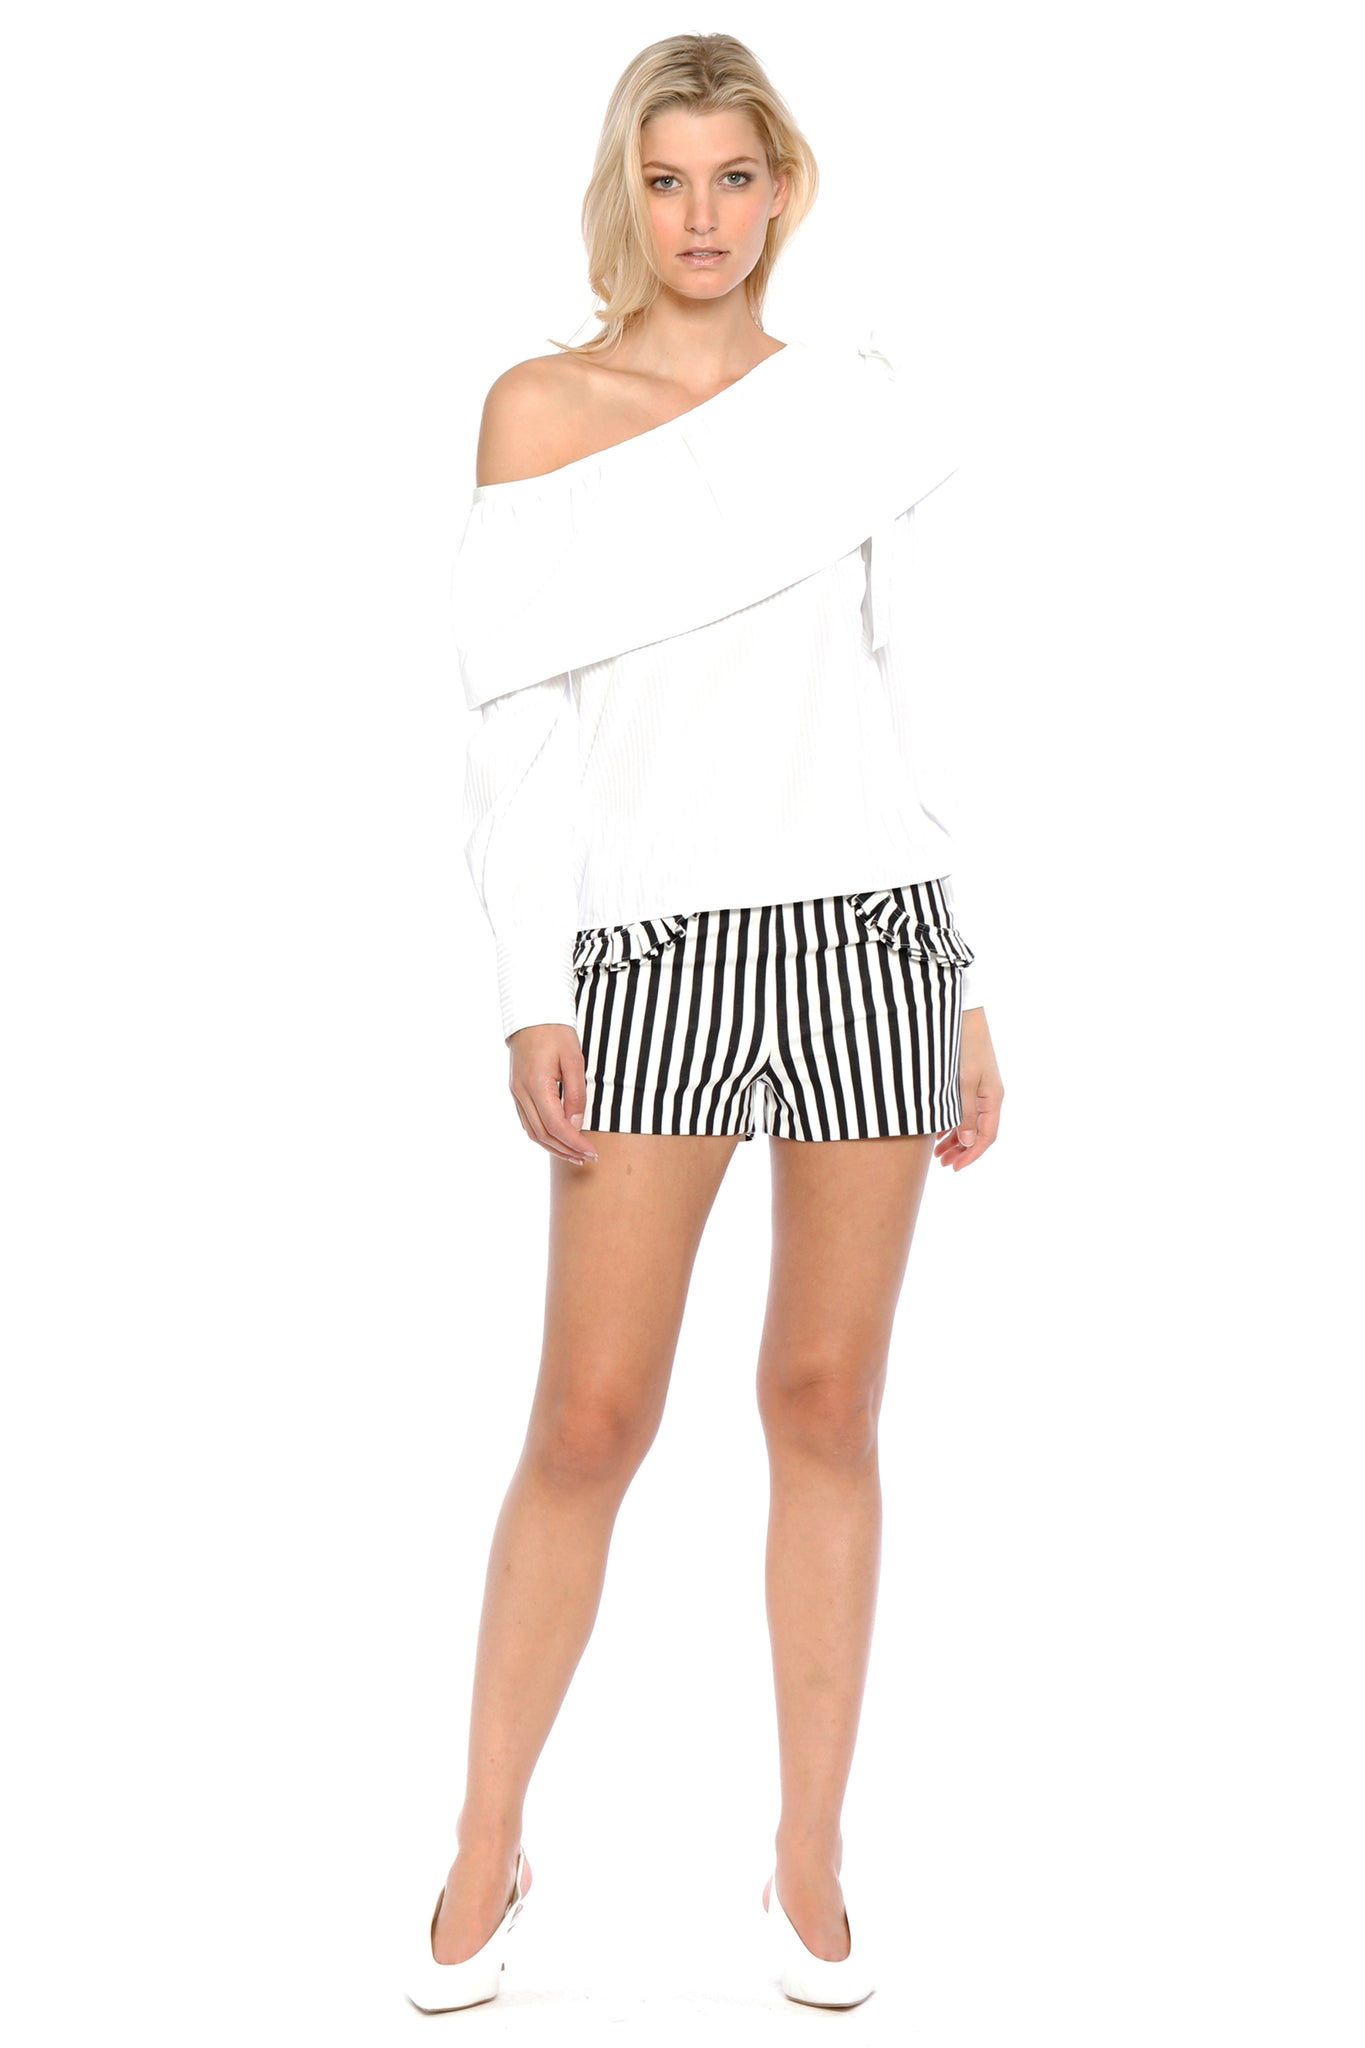 Front view of Jeanne Short, black-and-white-striped short shorts with frilled pockets. 60% Rayon, 35% Nylon, and 5% Spandex - and Machine-washable.